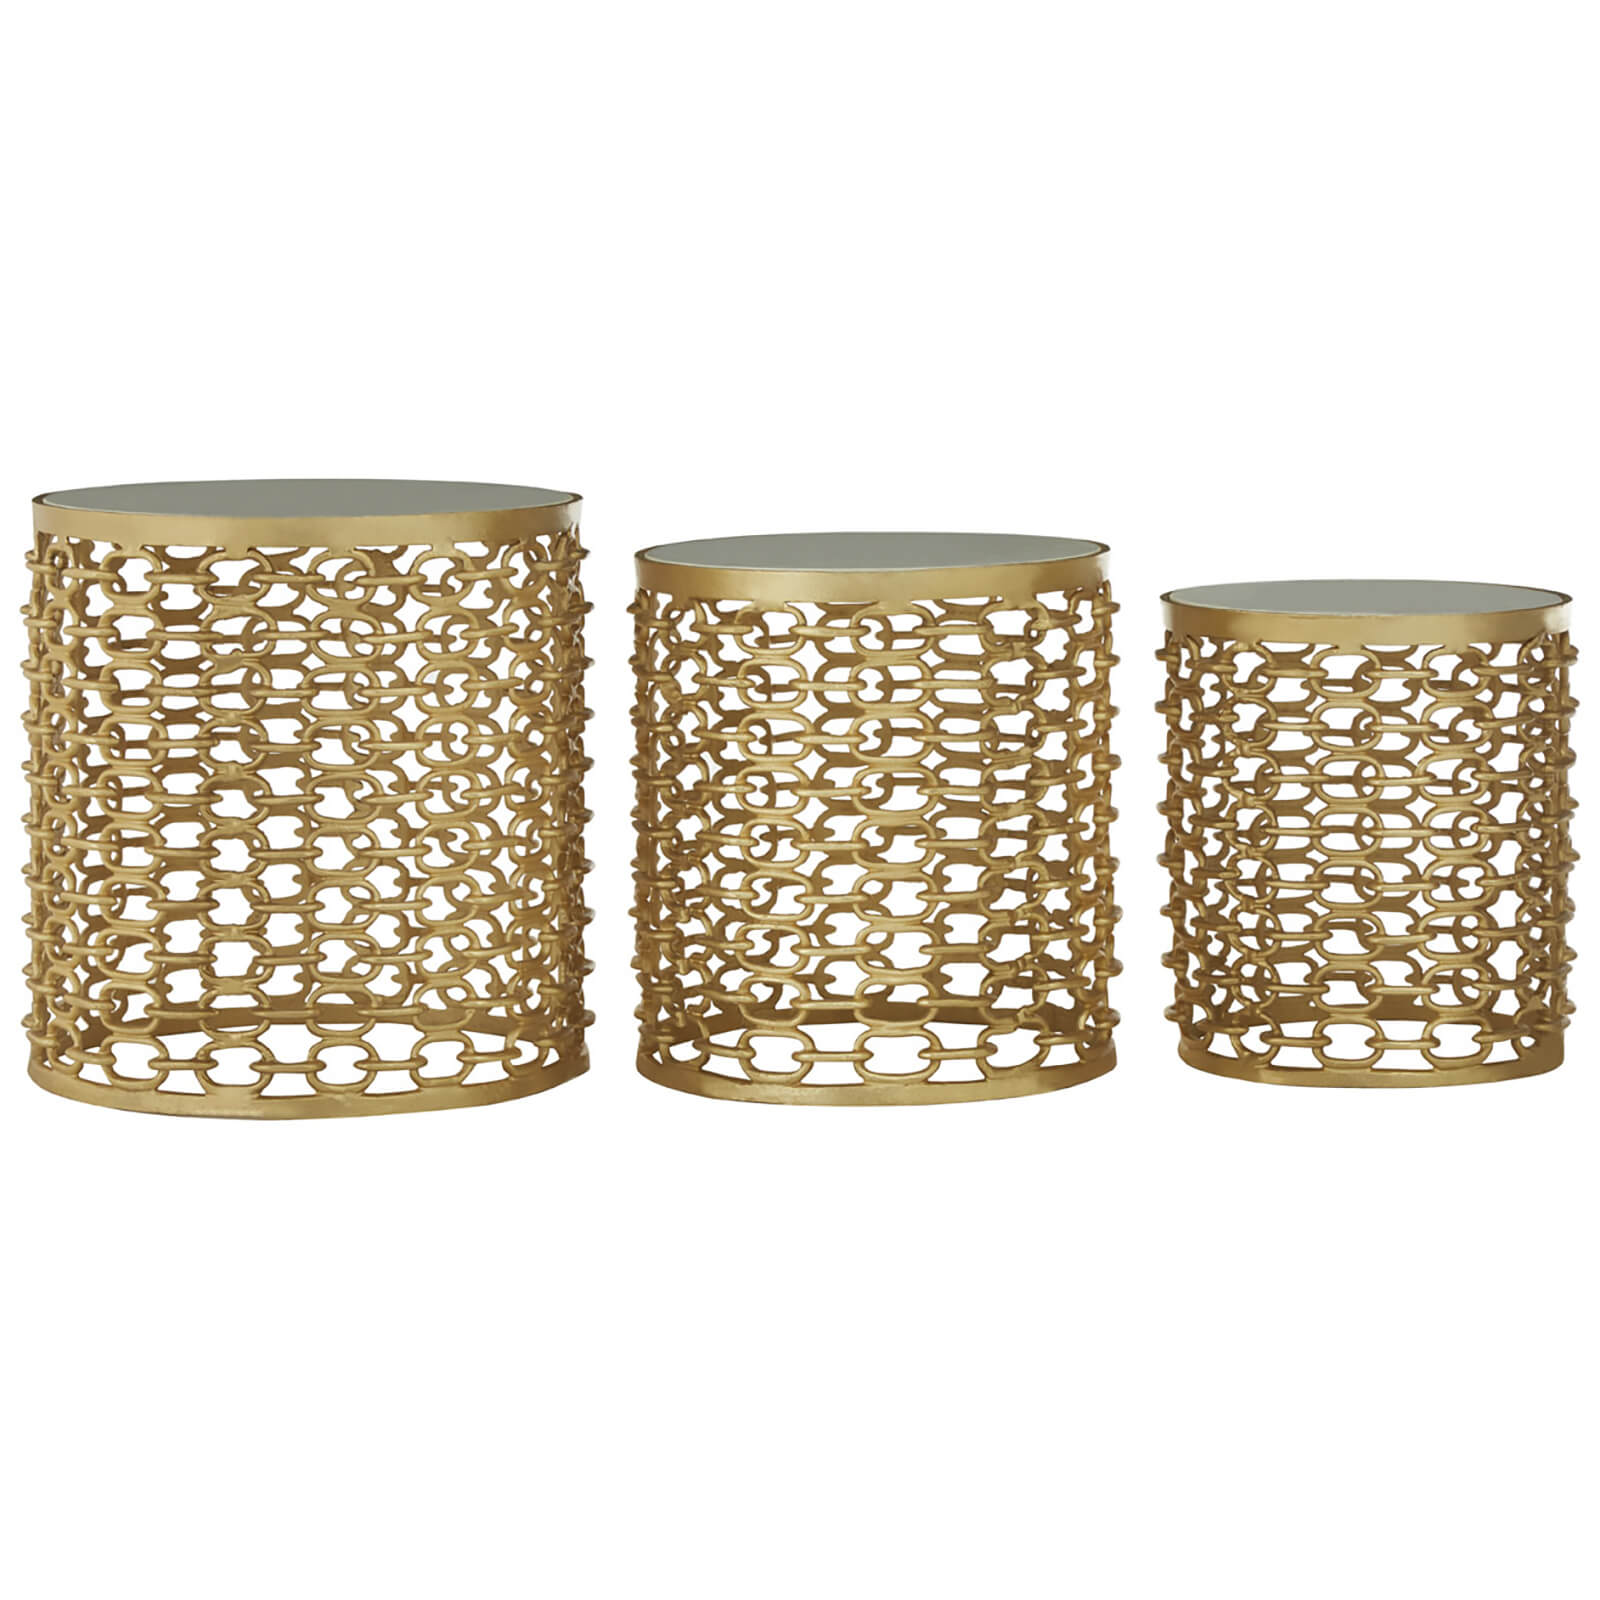 Fifty Five South Templar Side Tables (Set of 3) - Gold/Stone